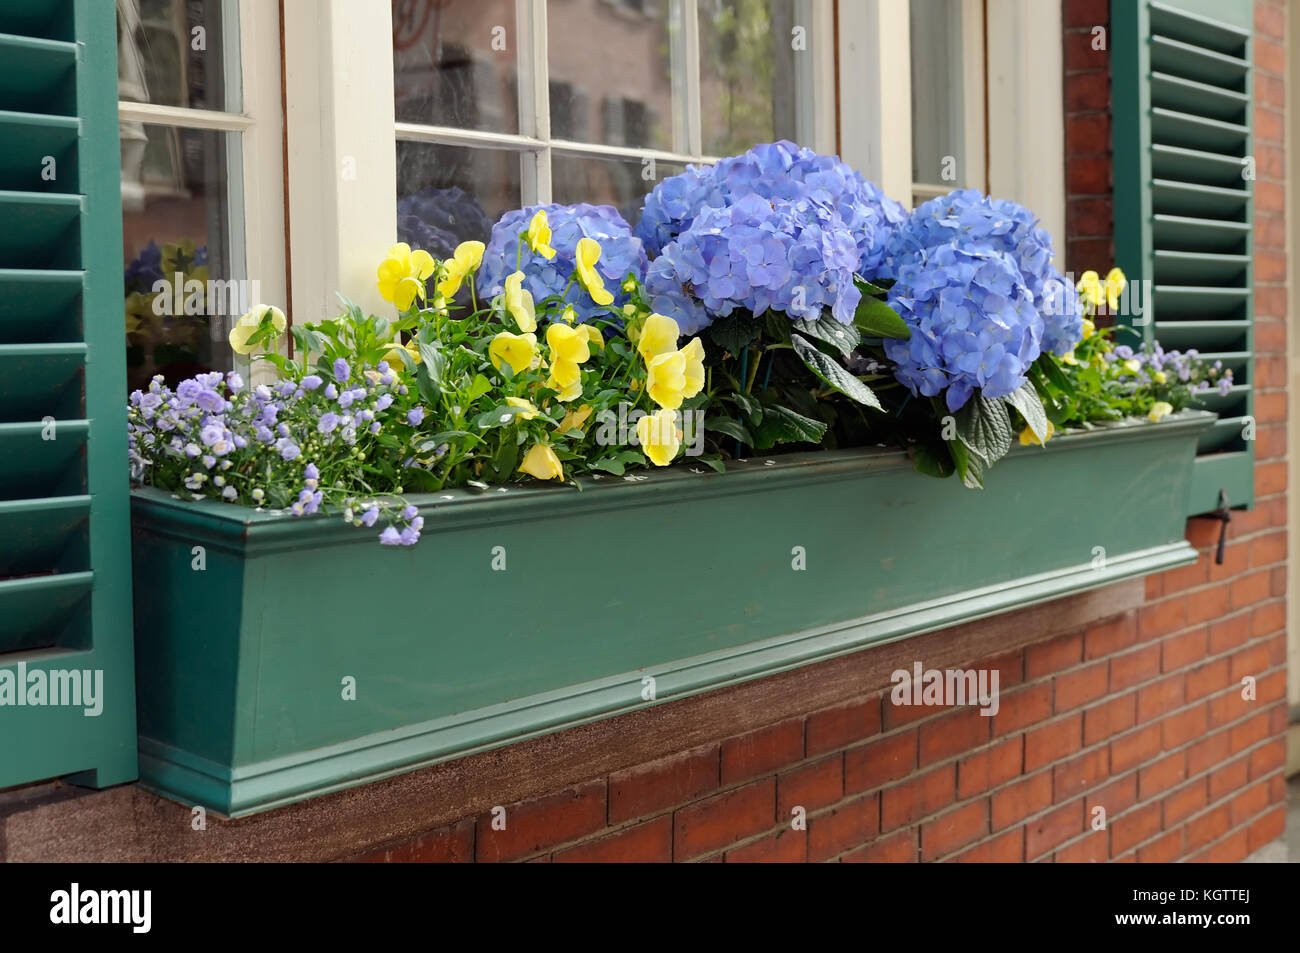 Green window box with blue hydrangeas and yellow pansies. Container garden in the city - Stock Image